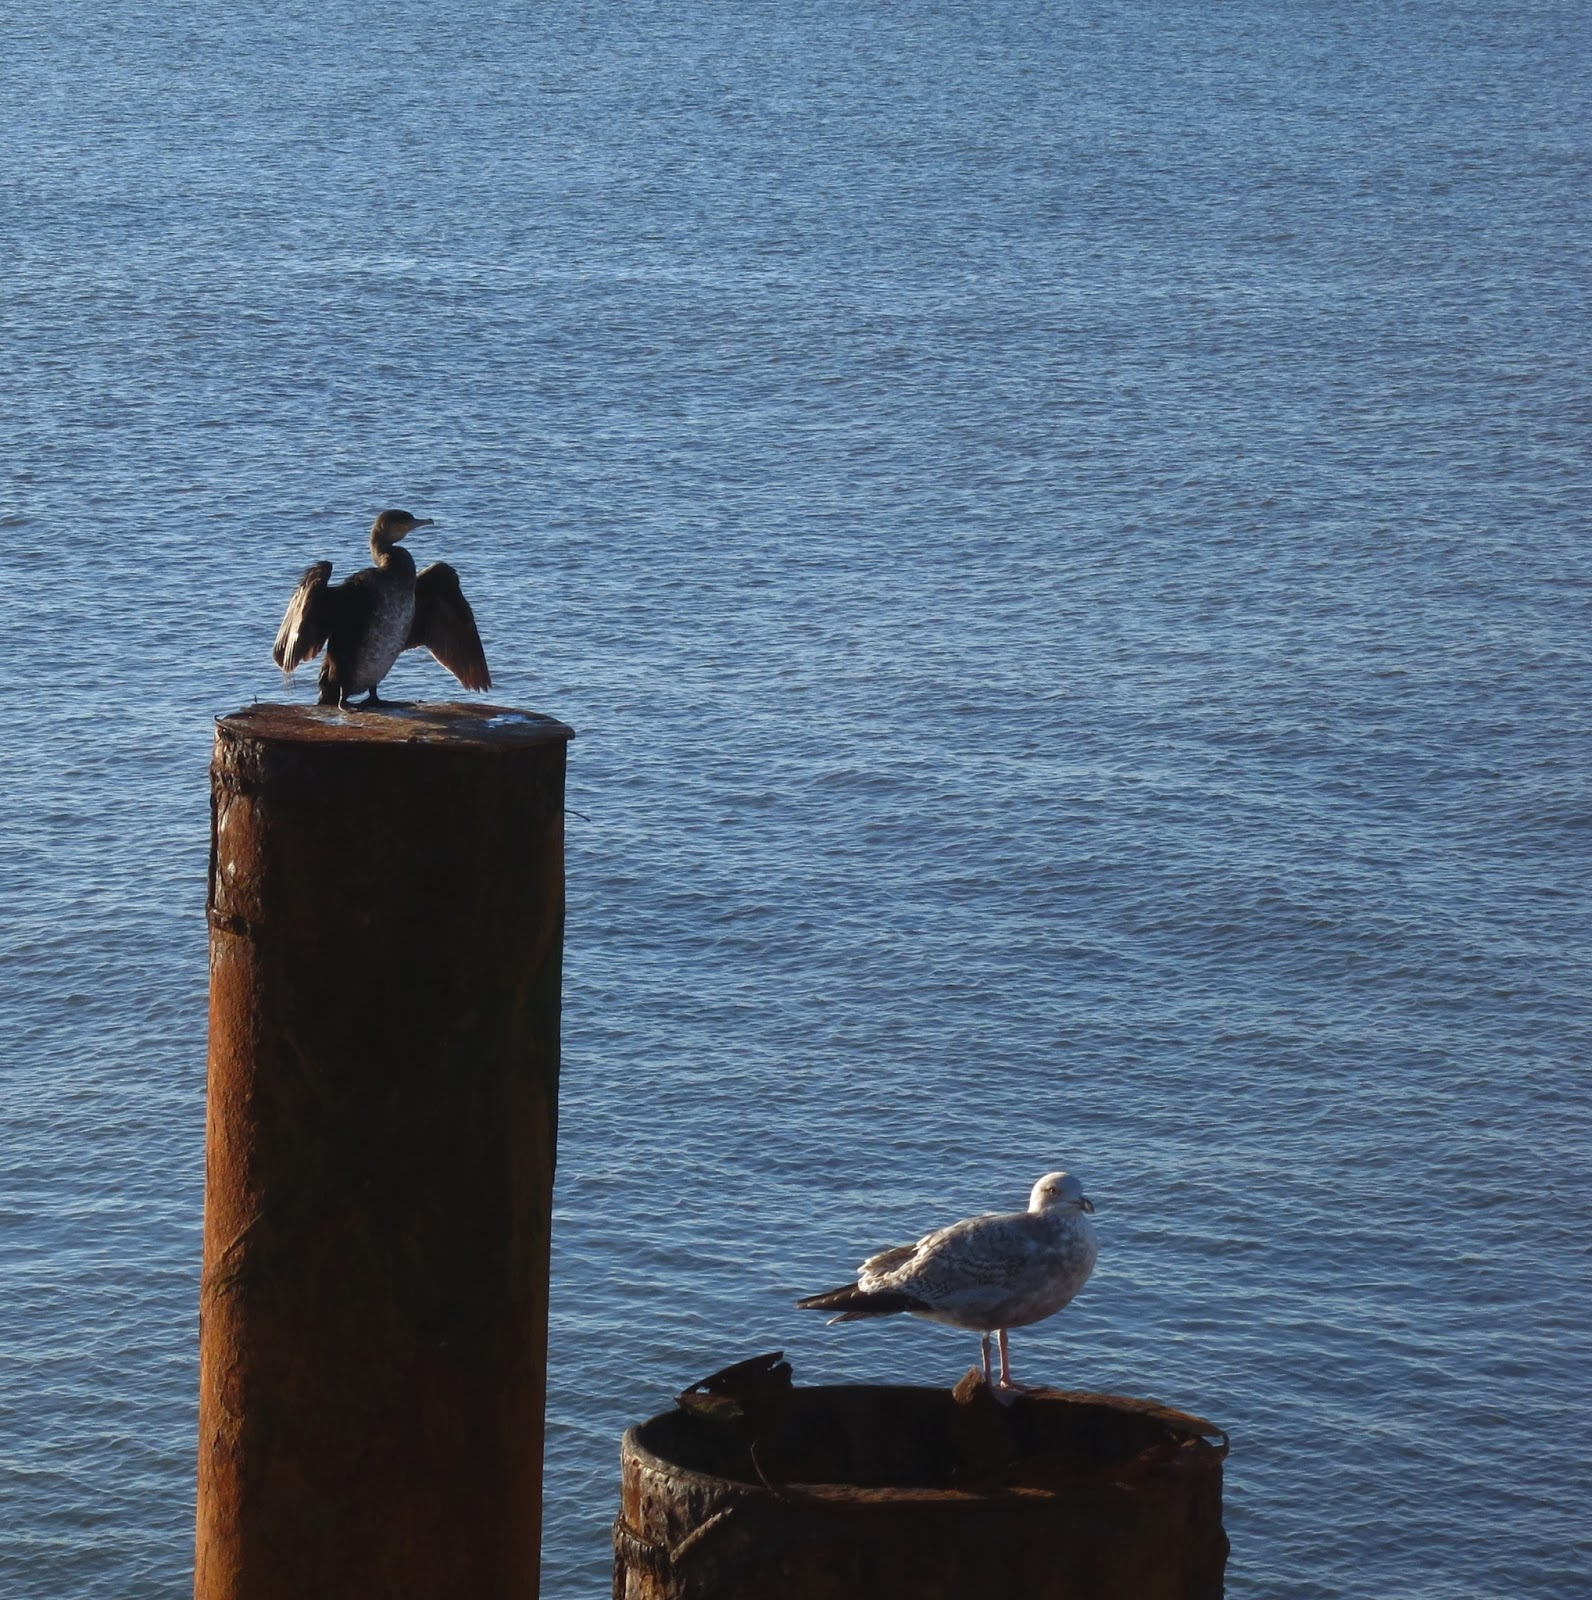 Cormorant (?) and Herring Gull (?) on separate posts in the sea.